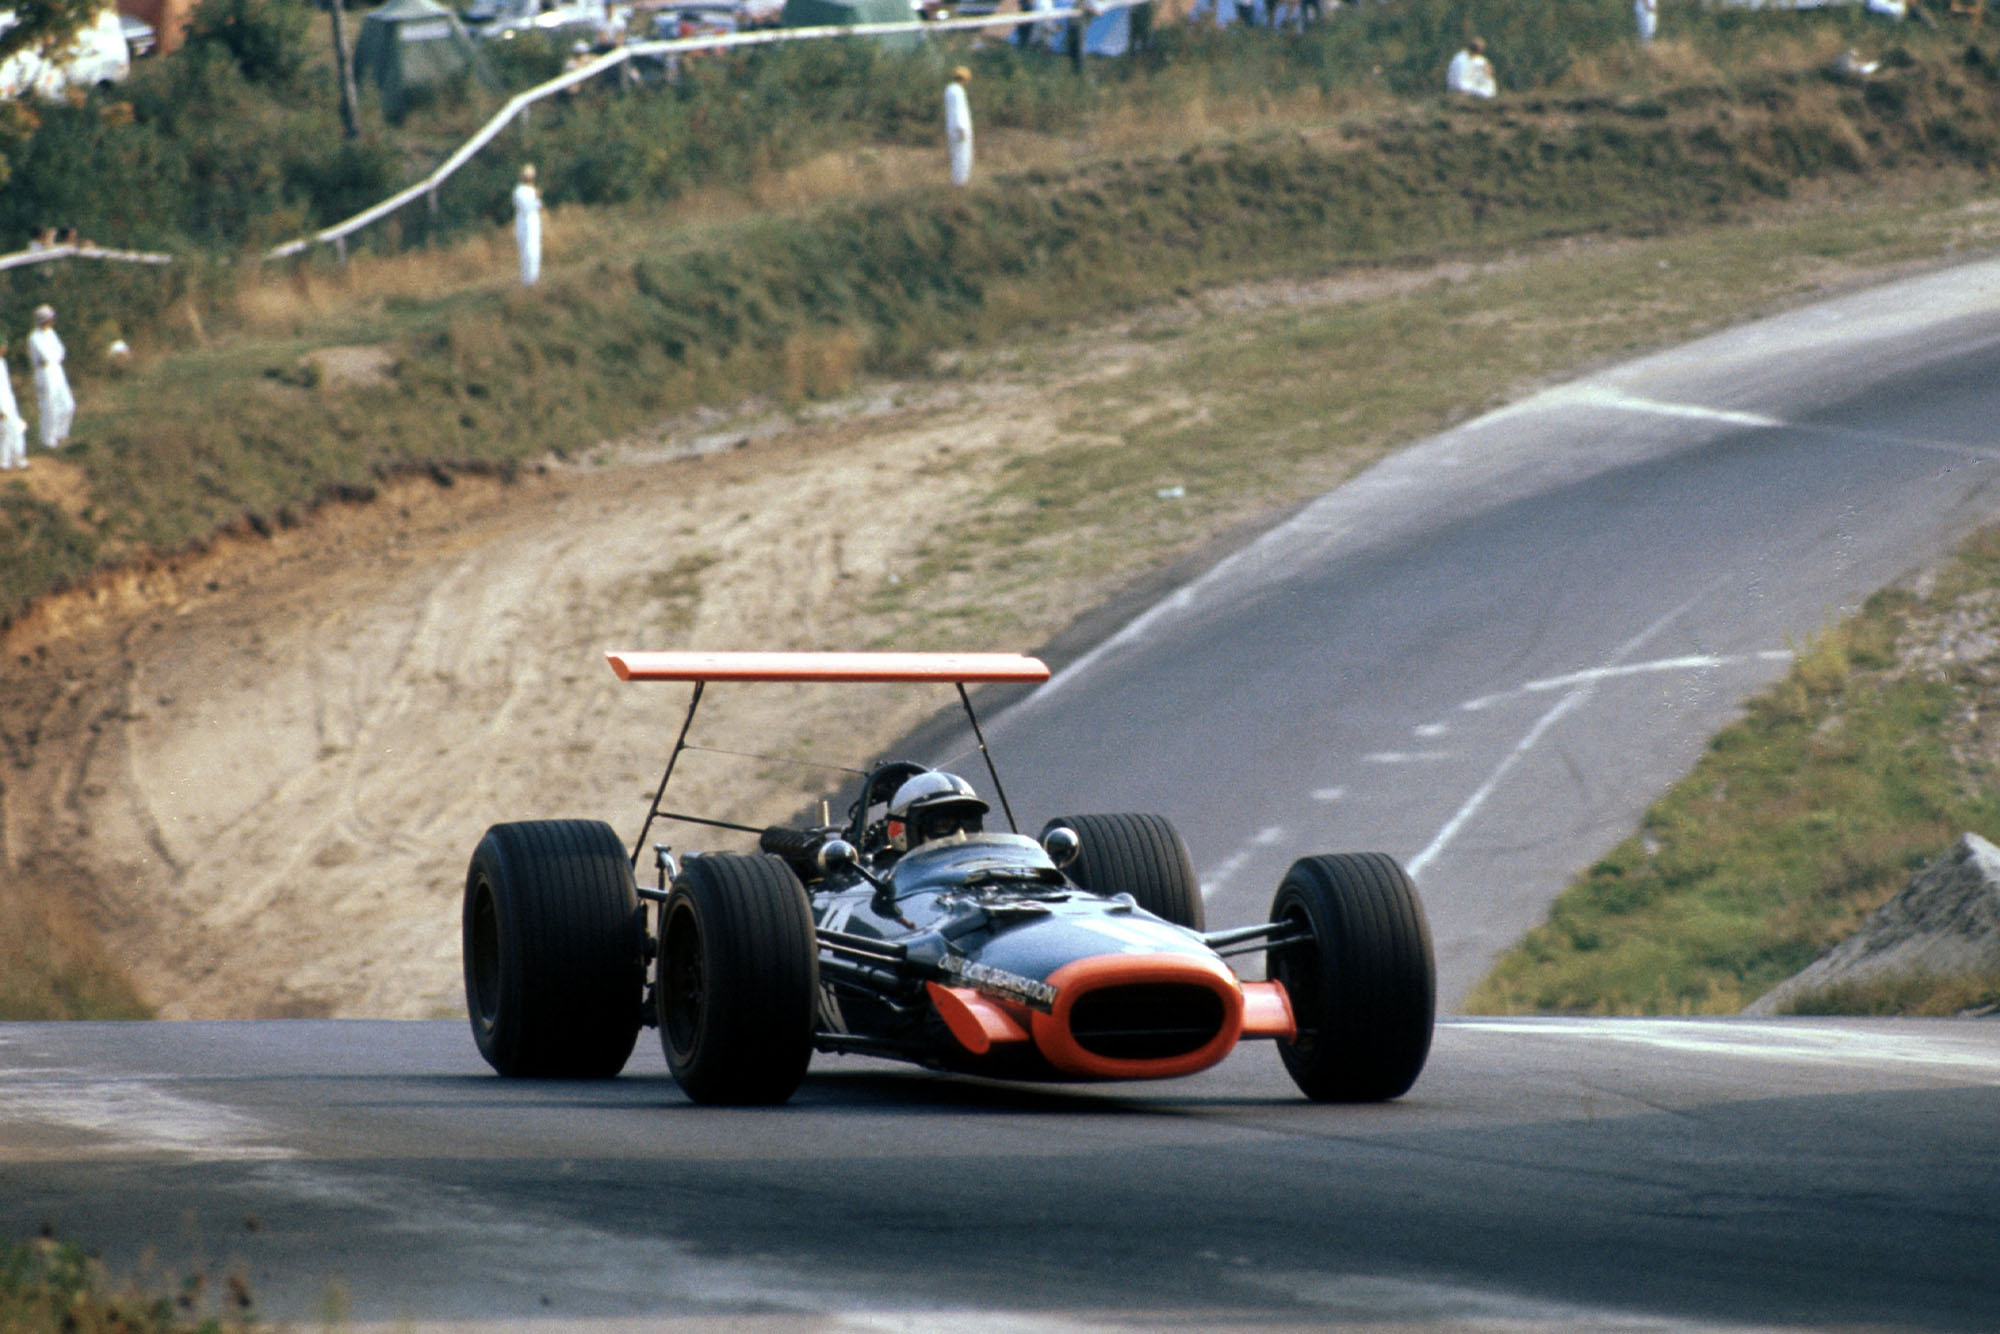 Pedro Rodriguez racing for BRM at the 1968 Canadian Grand Prix.